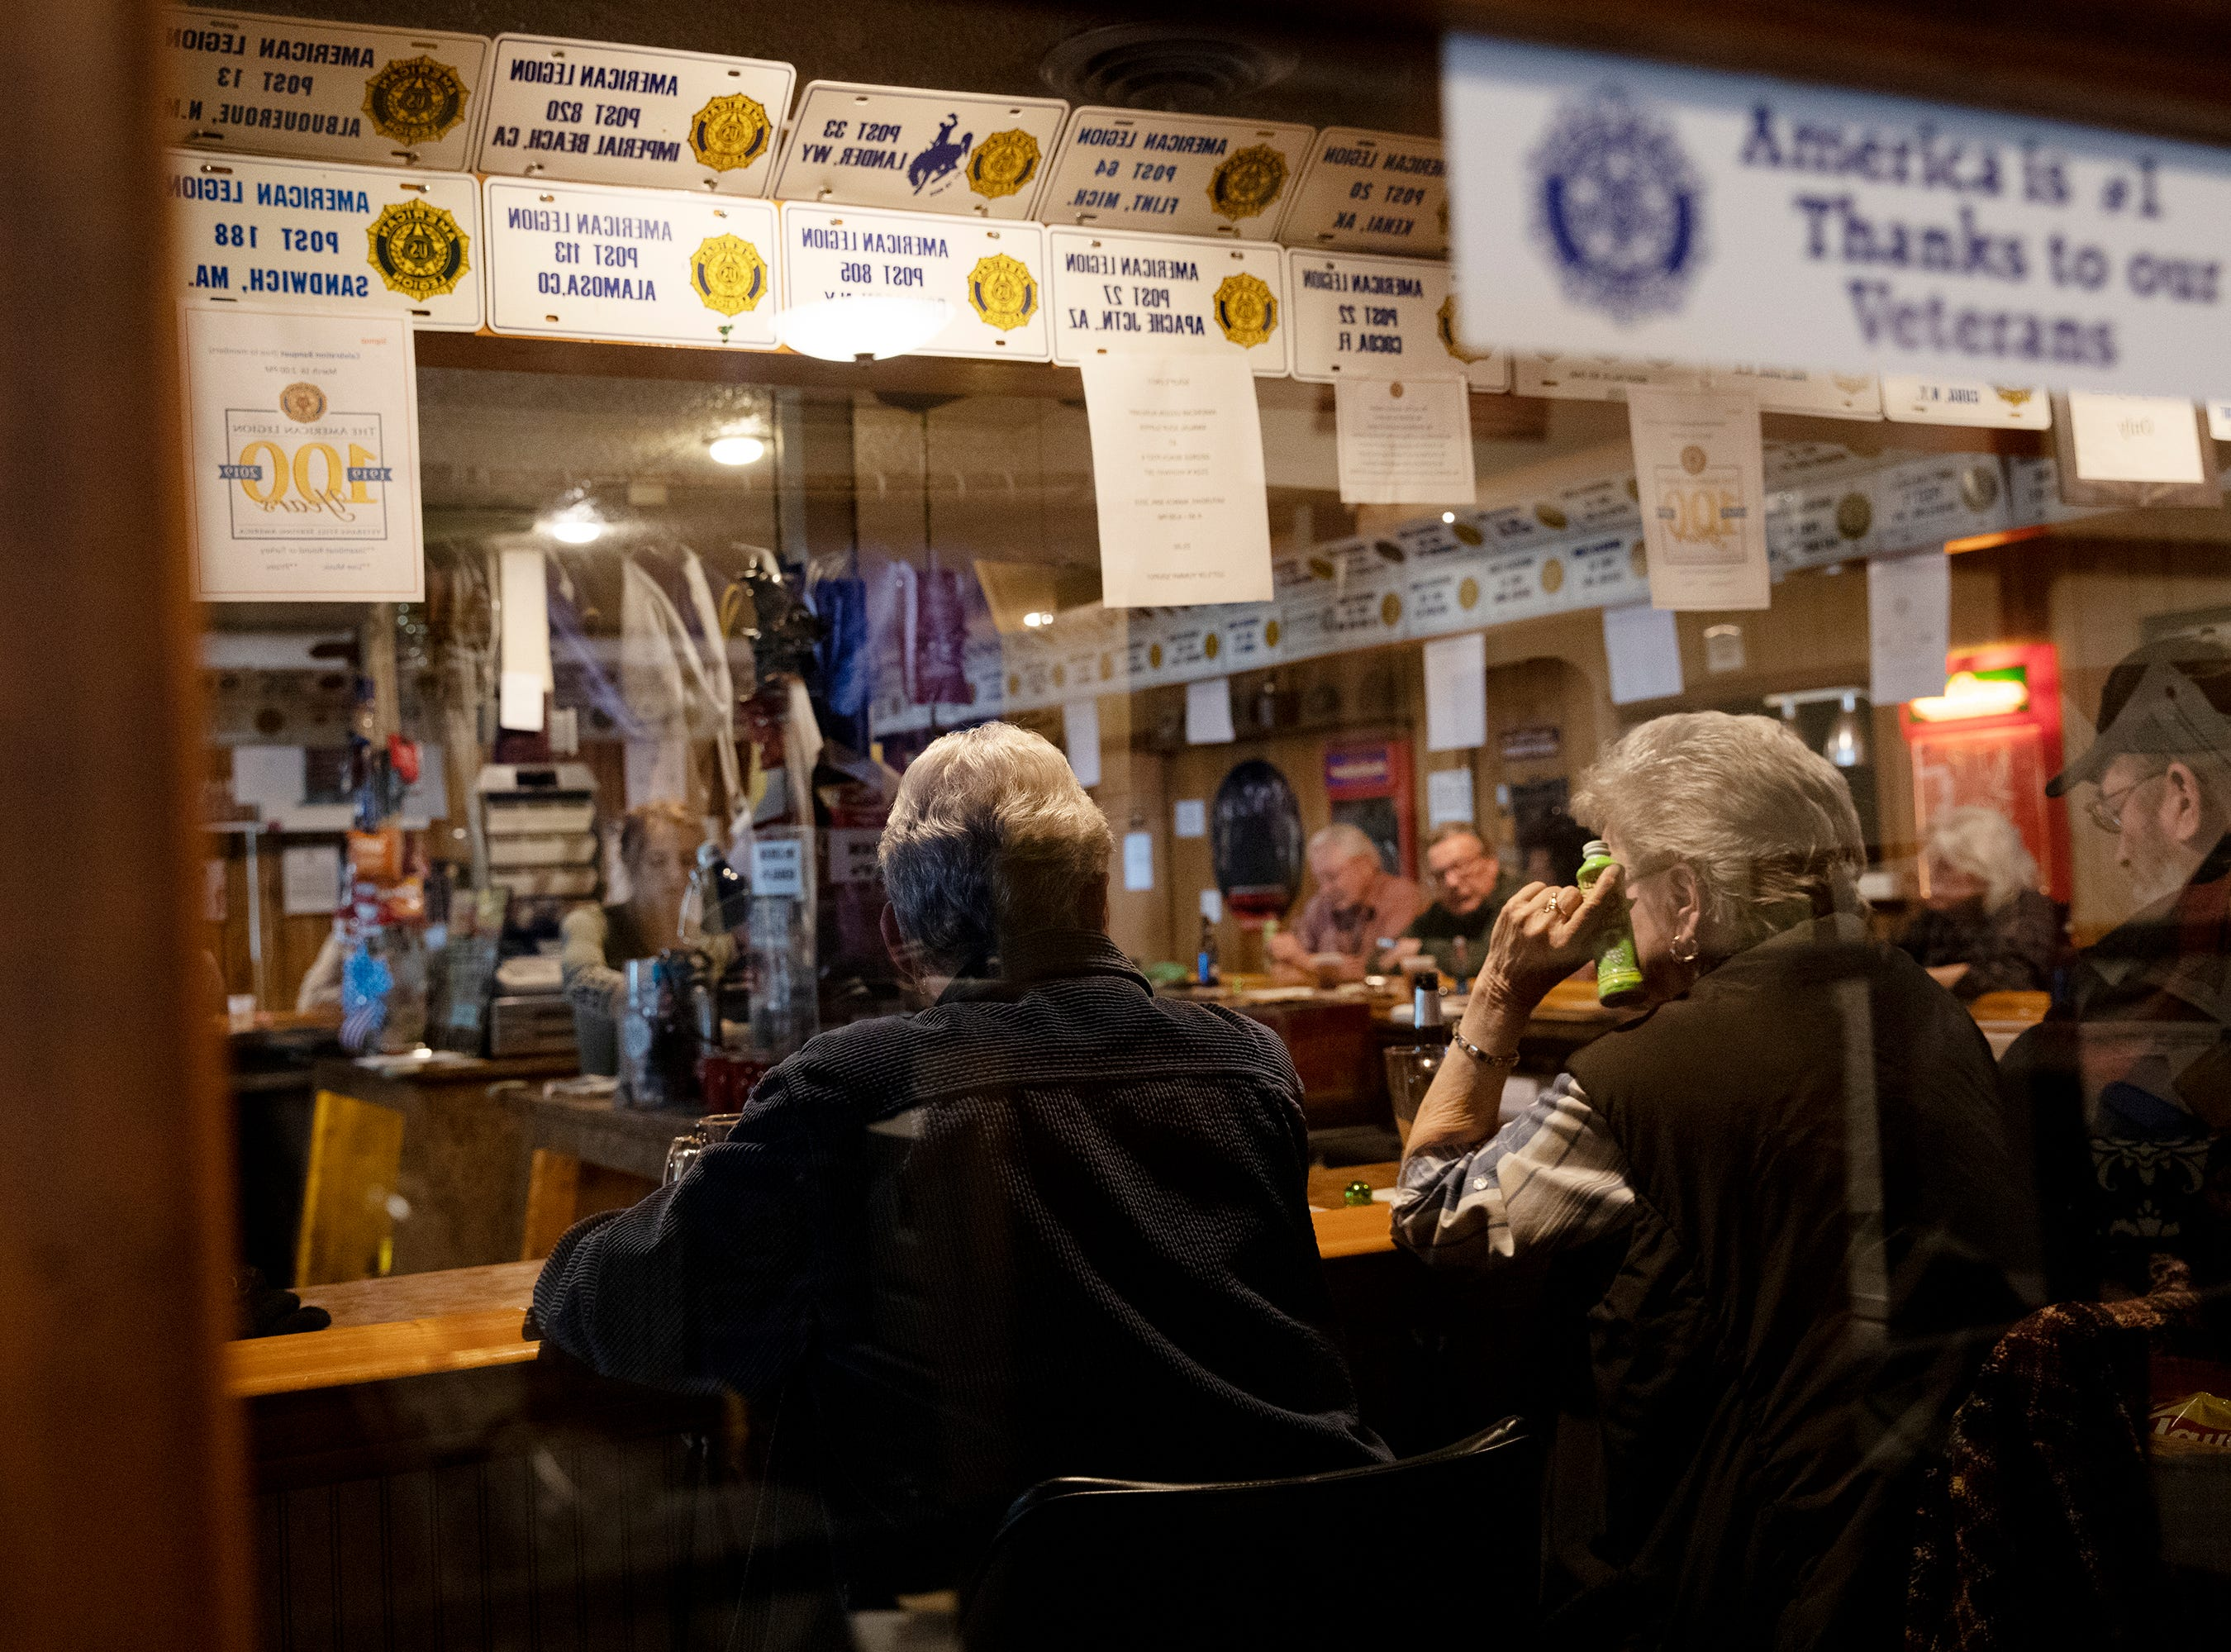 Attendees gather at the bar of the George Beach No. 4 Post of the American Legion for the weekly Sunday afternoon bingo.